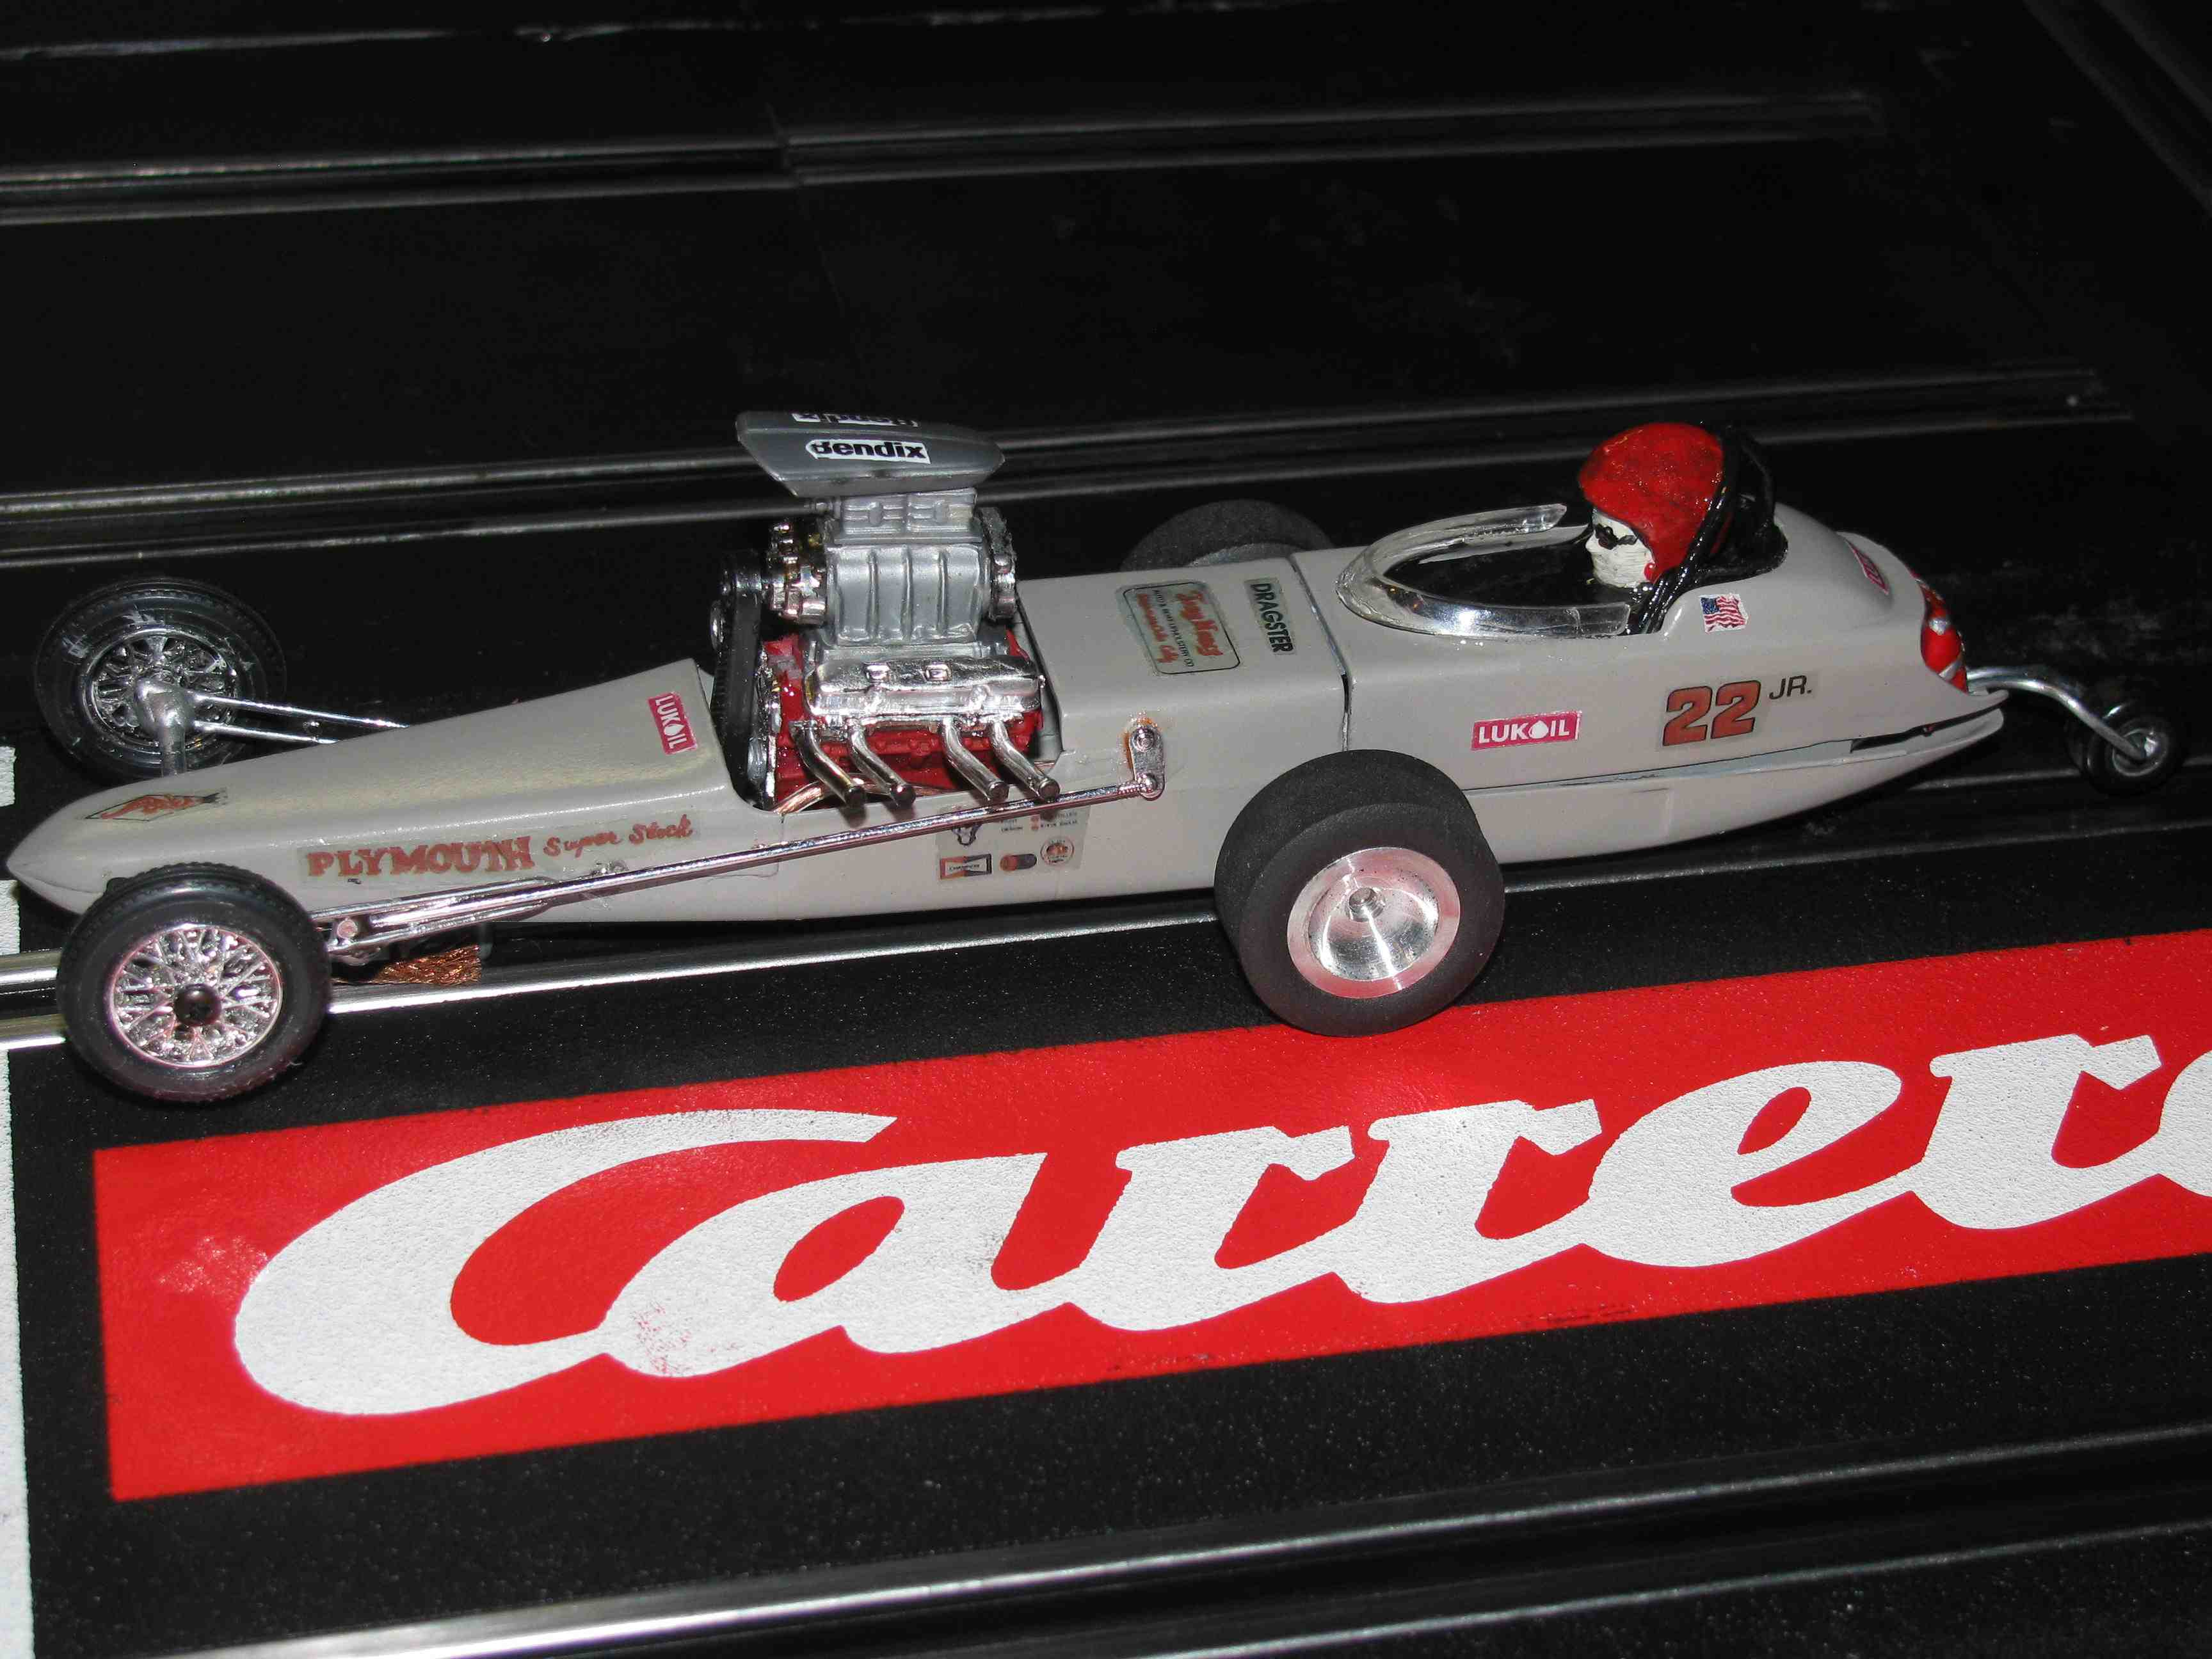 * SOLD * Revell Tony Nancy 22JR Plymouth Super Stock Dragster - 1:24 Scale Slot Car